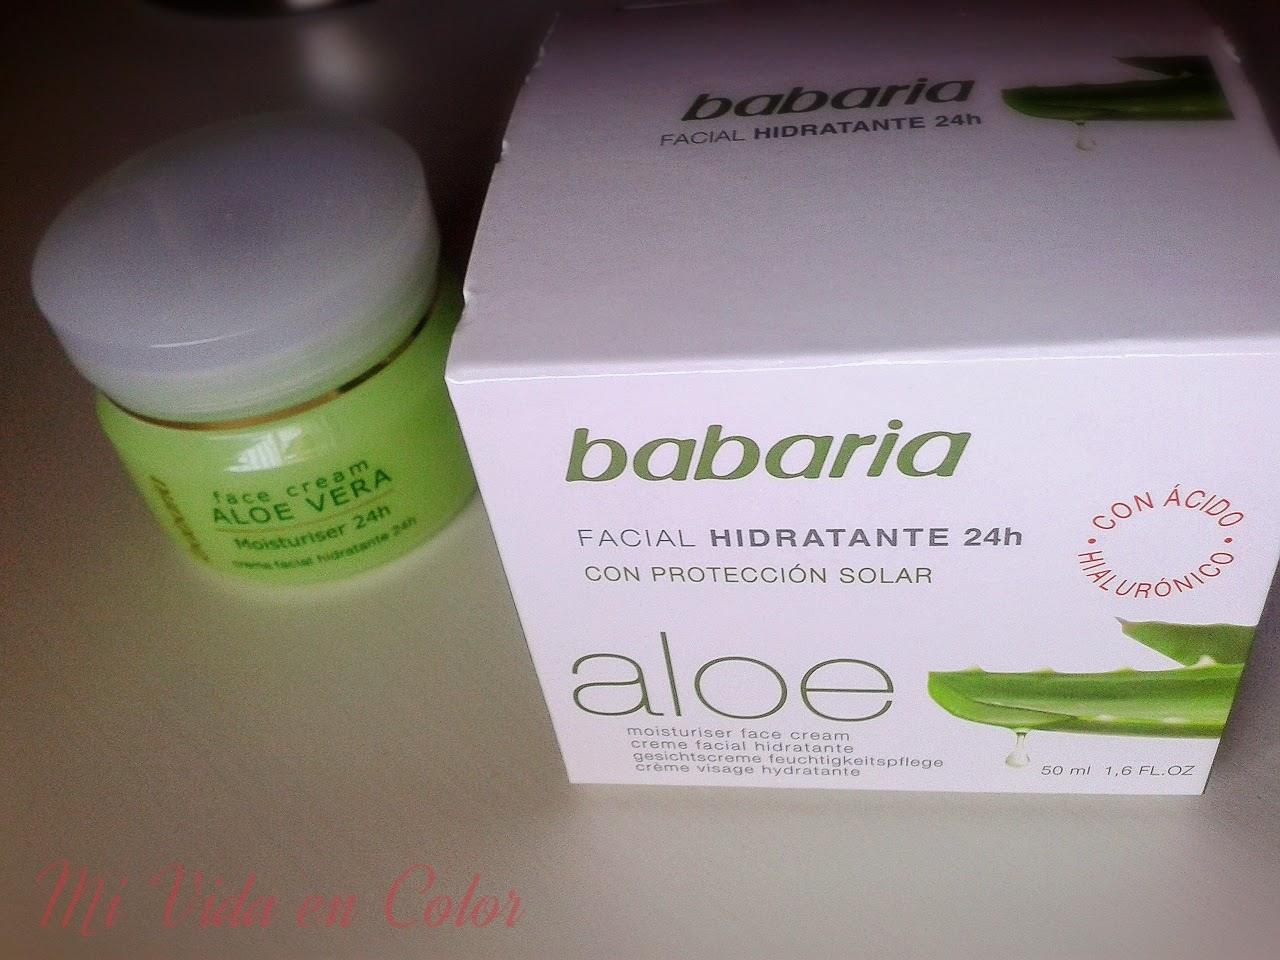 hidrante facial, babaria, review, reseña, mi vida en  color, aloe vera